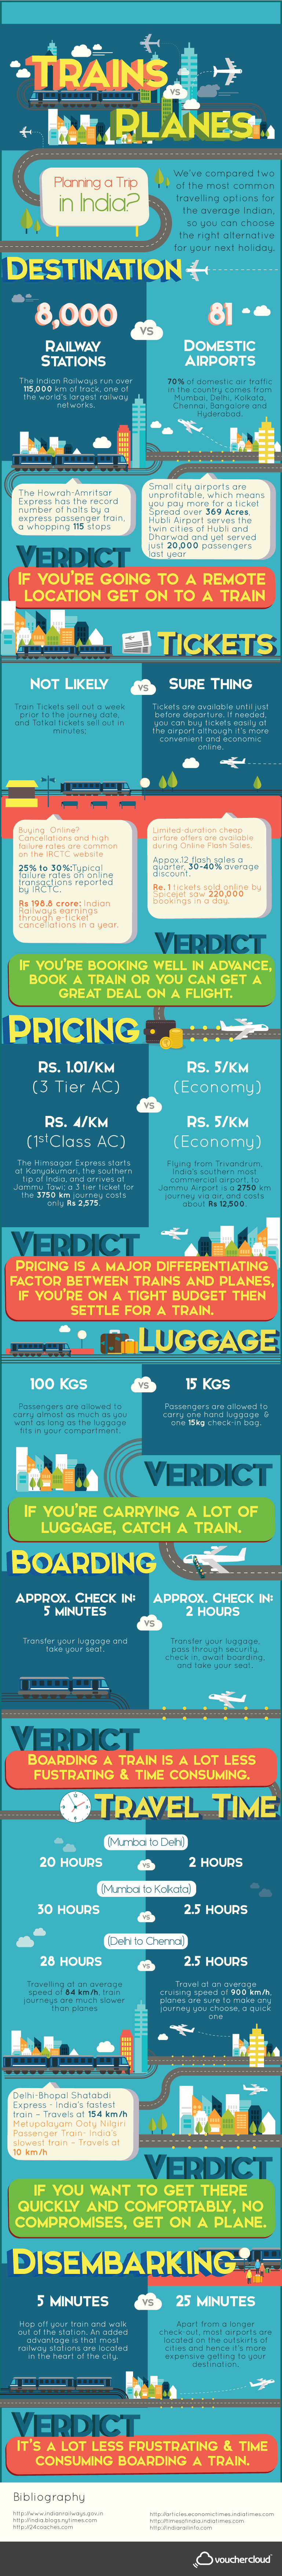 Trains vs Planes - a comparison of travel in India